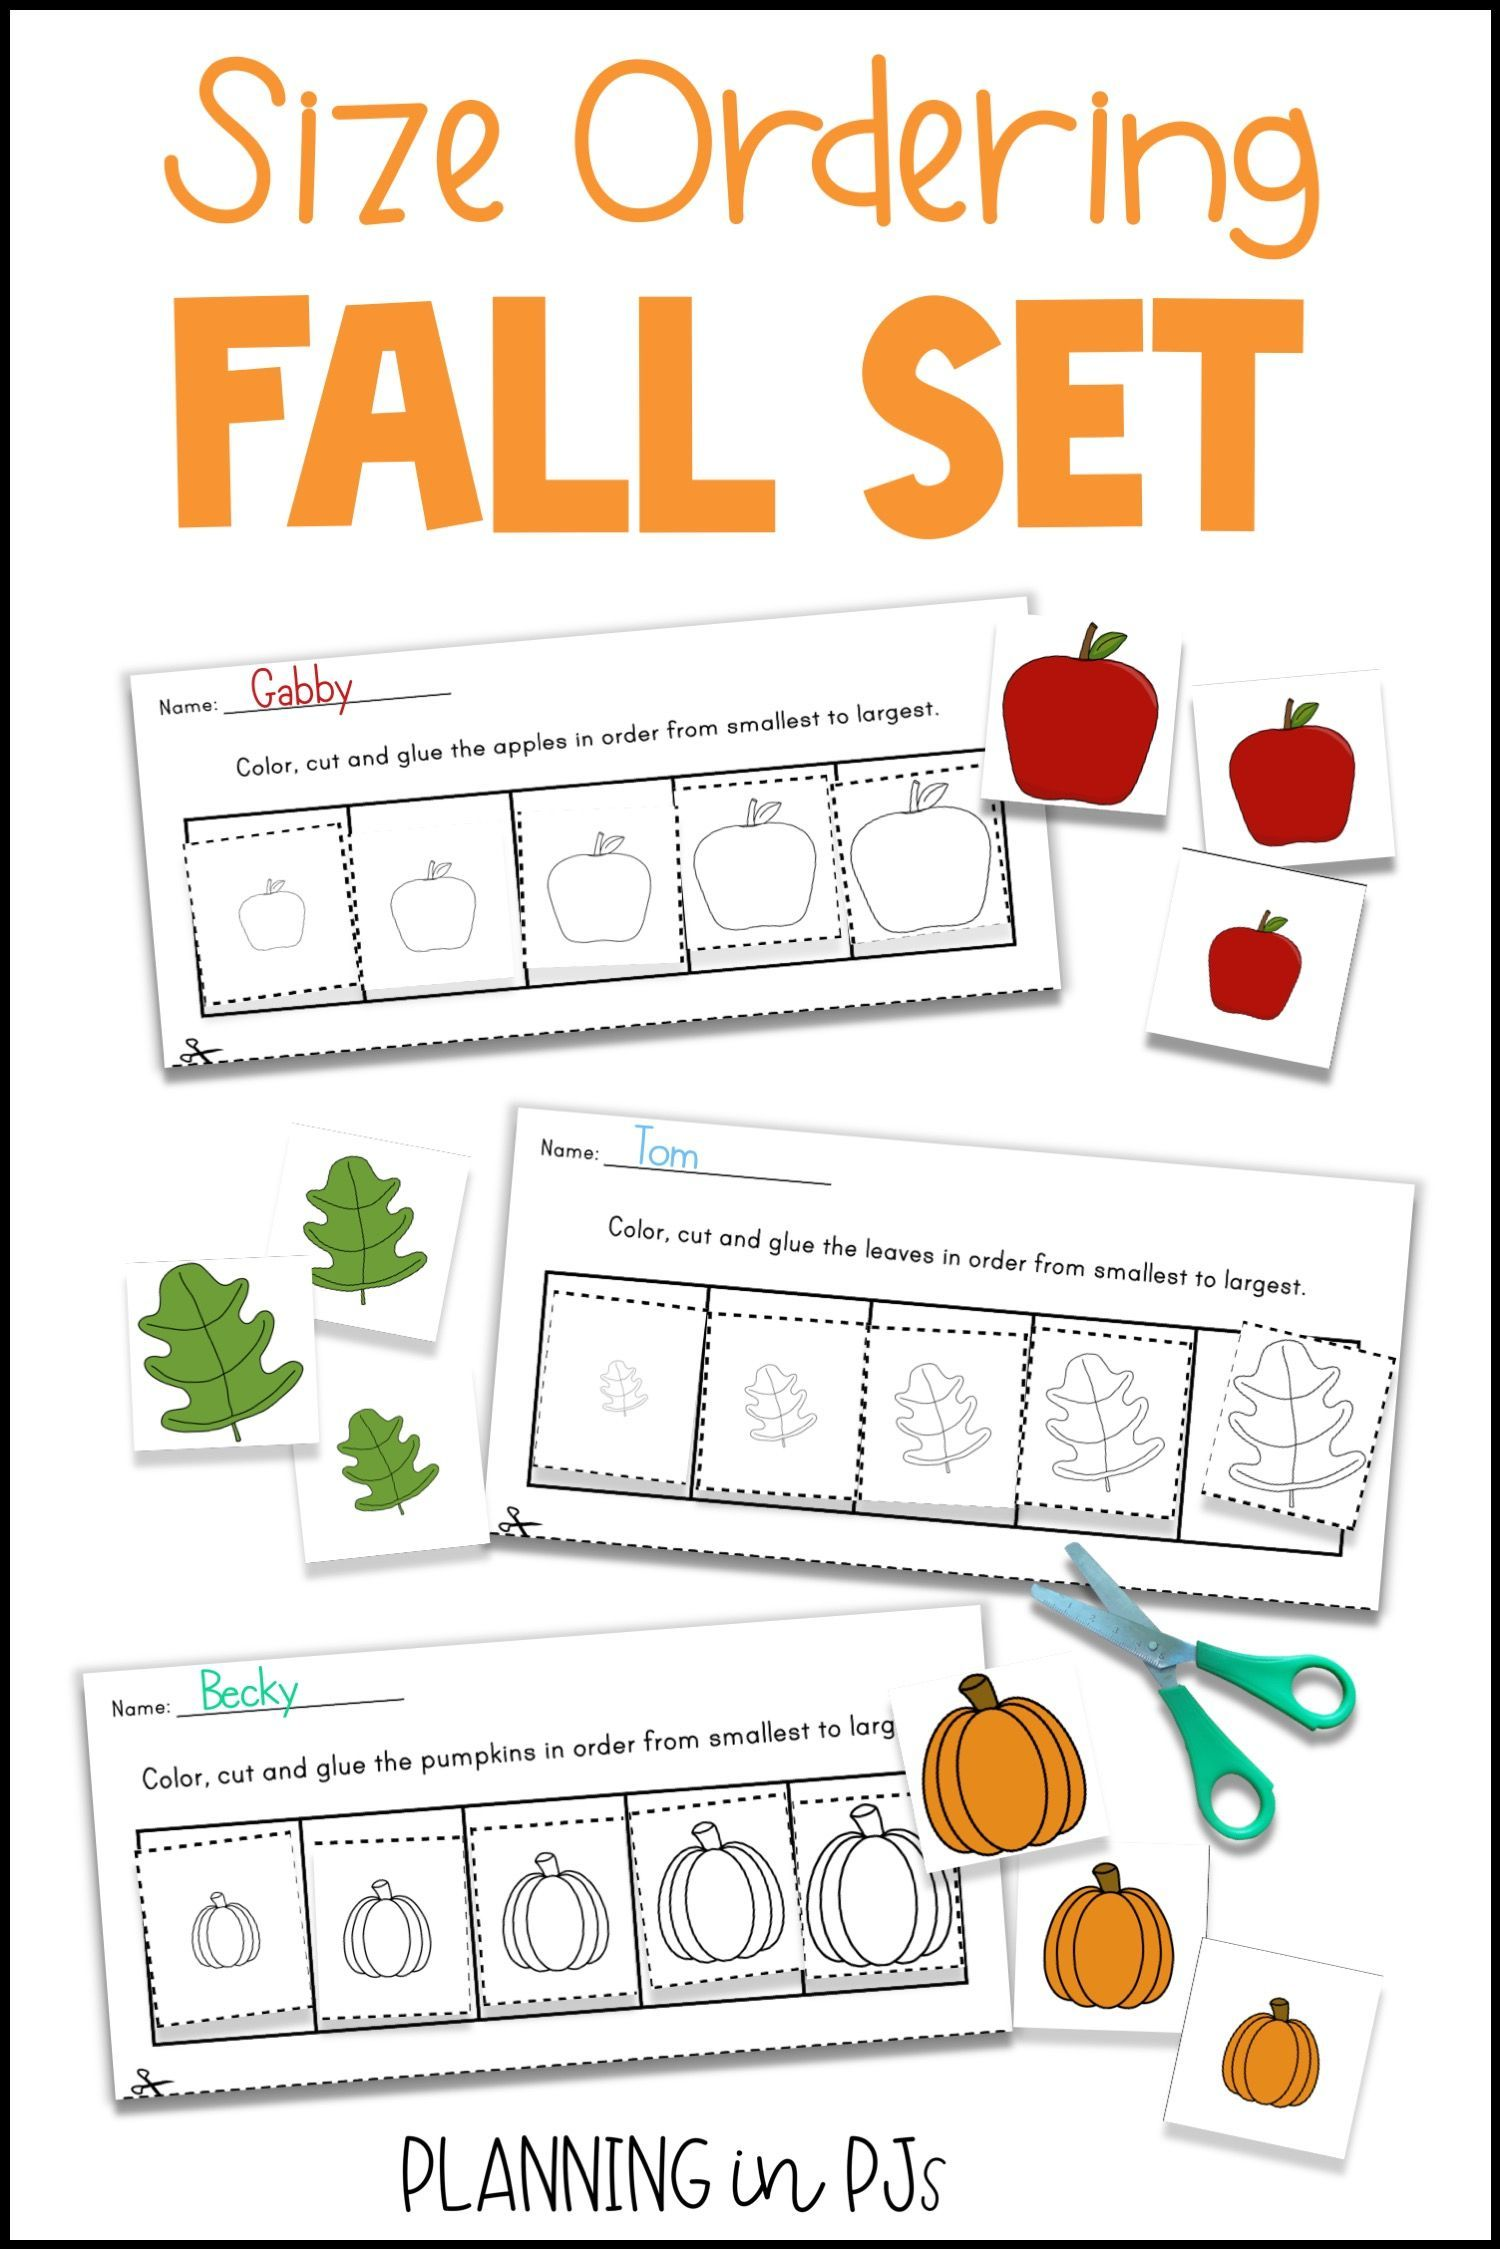 Fall Size Ordering Bundle For Autumn From Smallest To Largest Fall Kindergarten Activities Fall Kindergarten Autumn Activities For Kids [ 2249 x 1500 Pixel ]